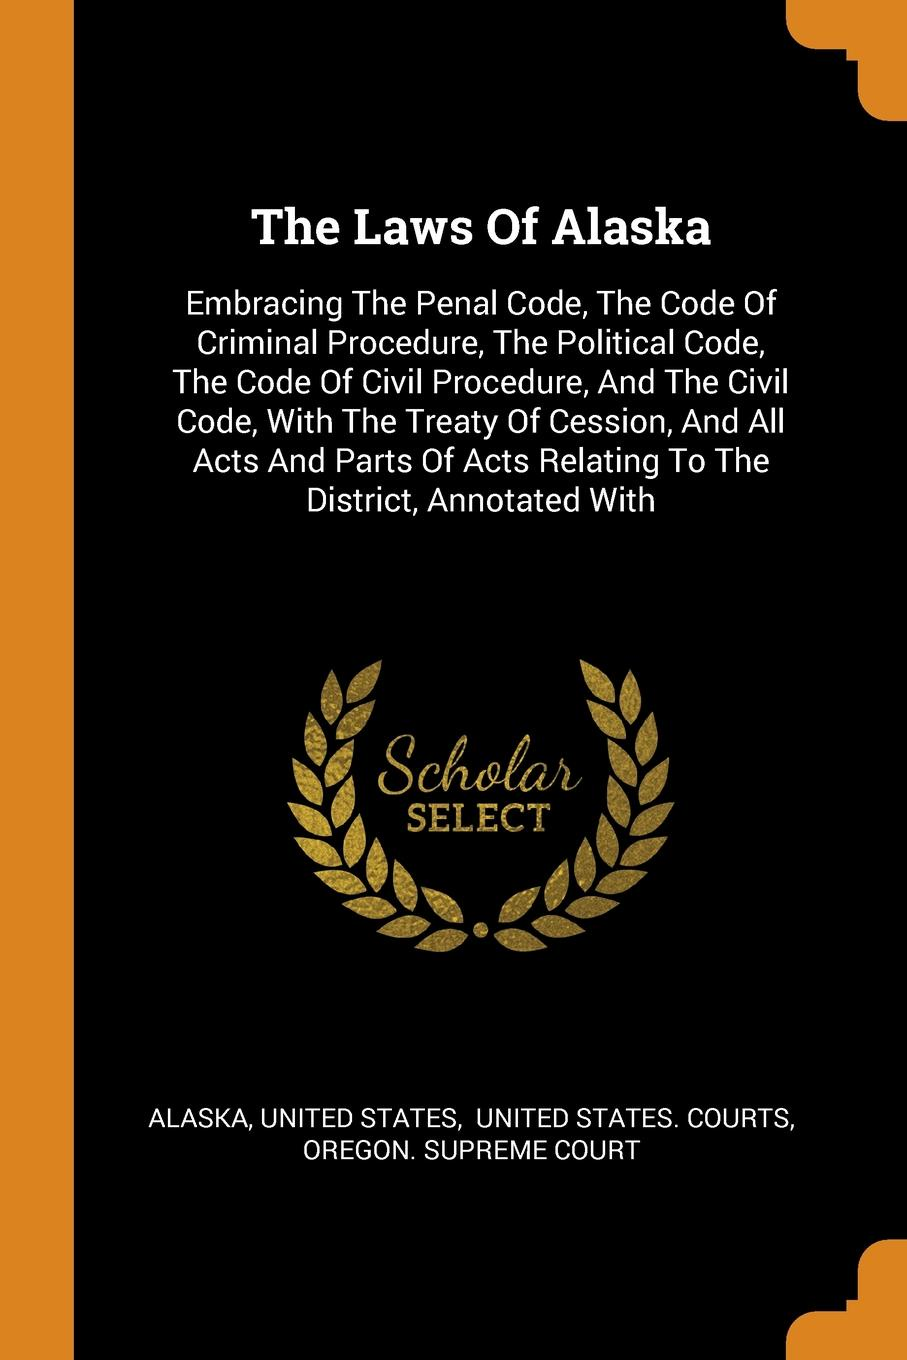 Фото - United States The Laws Of Alaska. Embracing The Penal Code, The Code Of Criminal Procedure, The Political Code, The Code Of Civil Procedure, And The Civil Code, With The Treaty Of Cession, And All Acts And Parts Of Acts Relating To The District, Annotated With рюкзак code code co073bwbyzk6